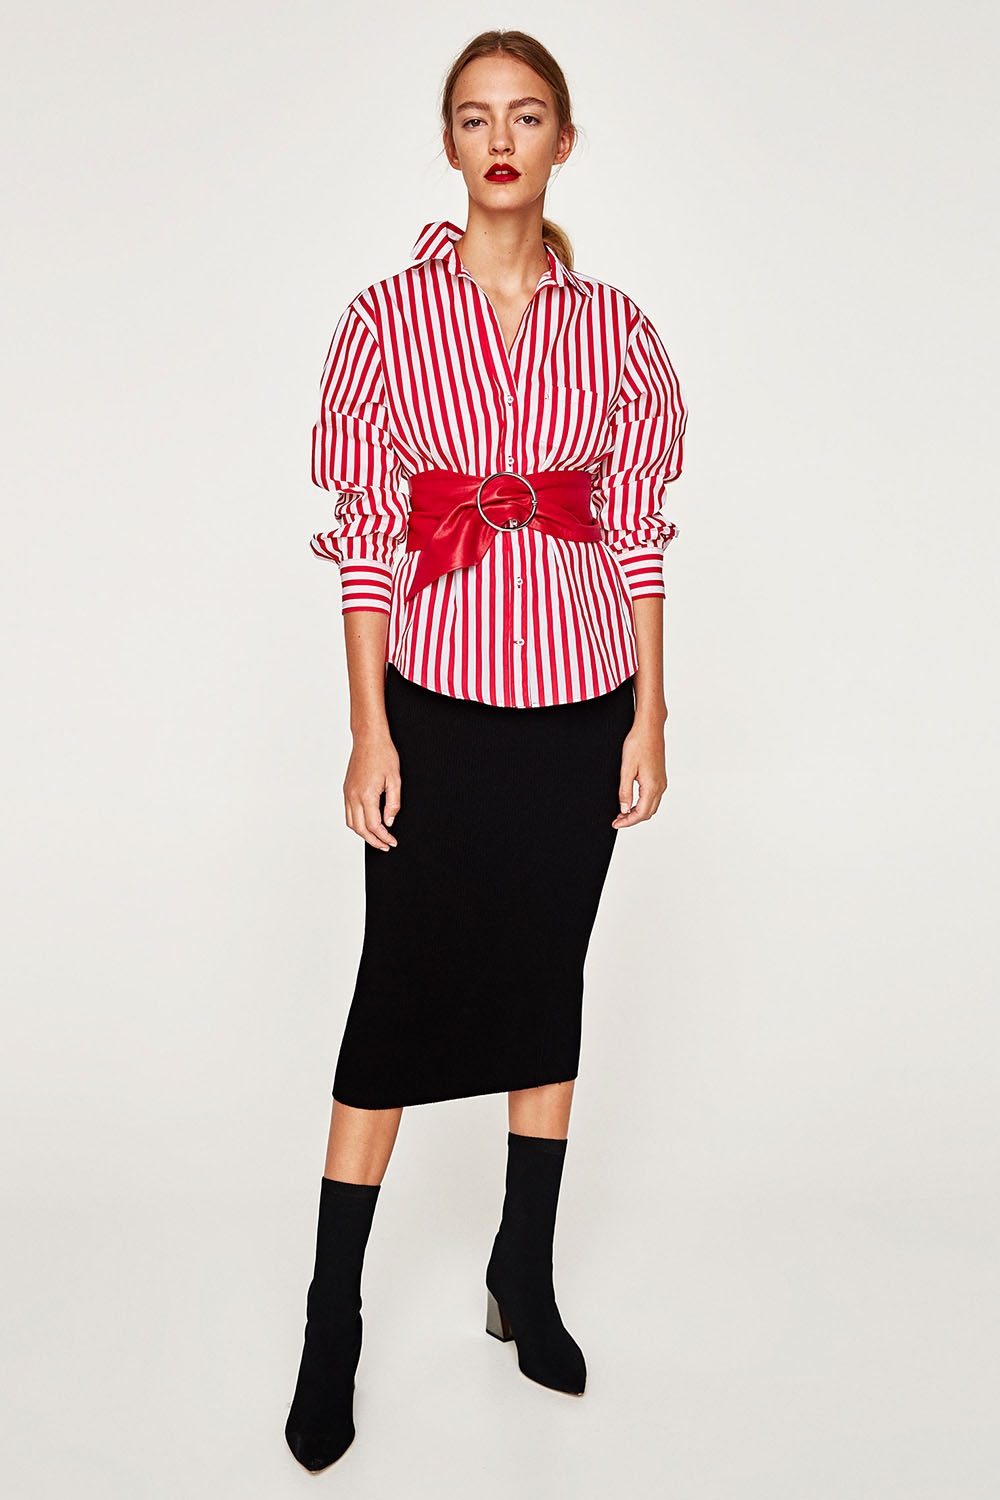 The AMAZING New Under £20 Zara Collection Is Here! - Look